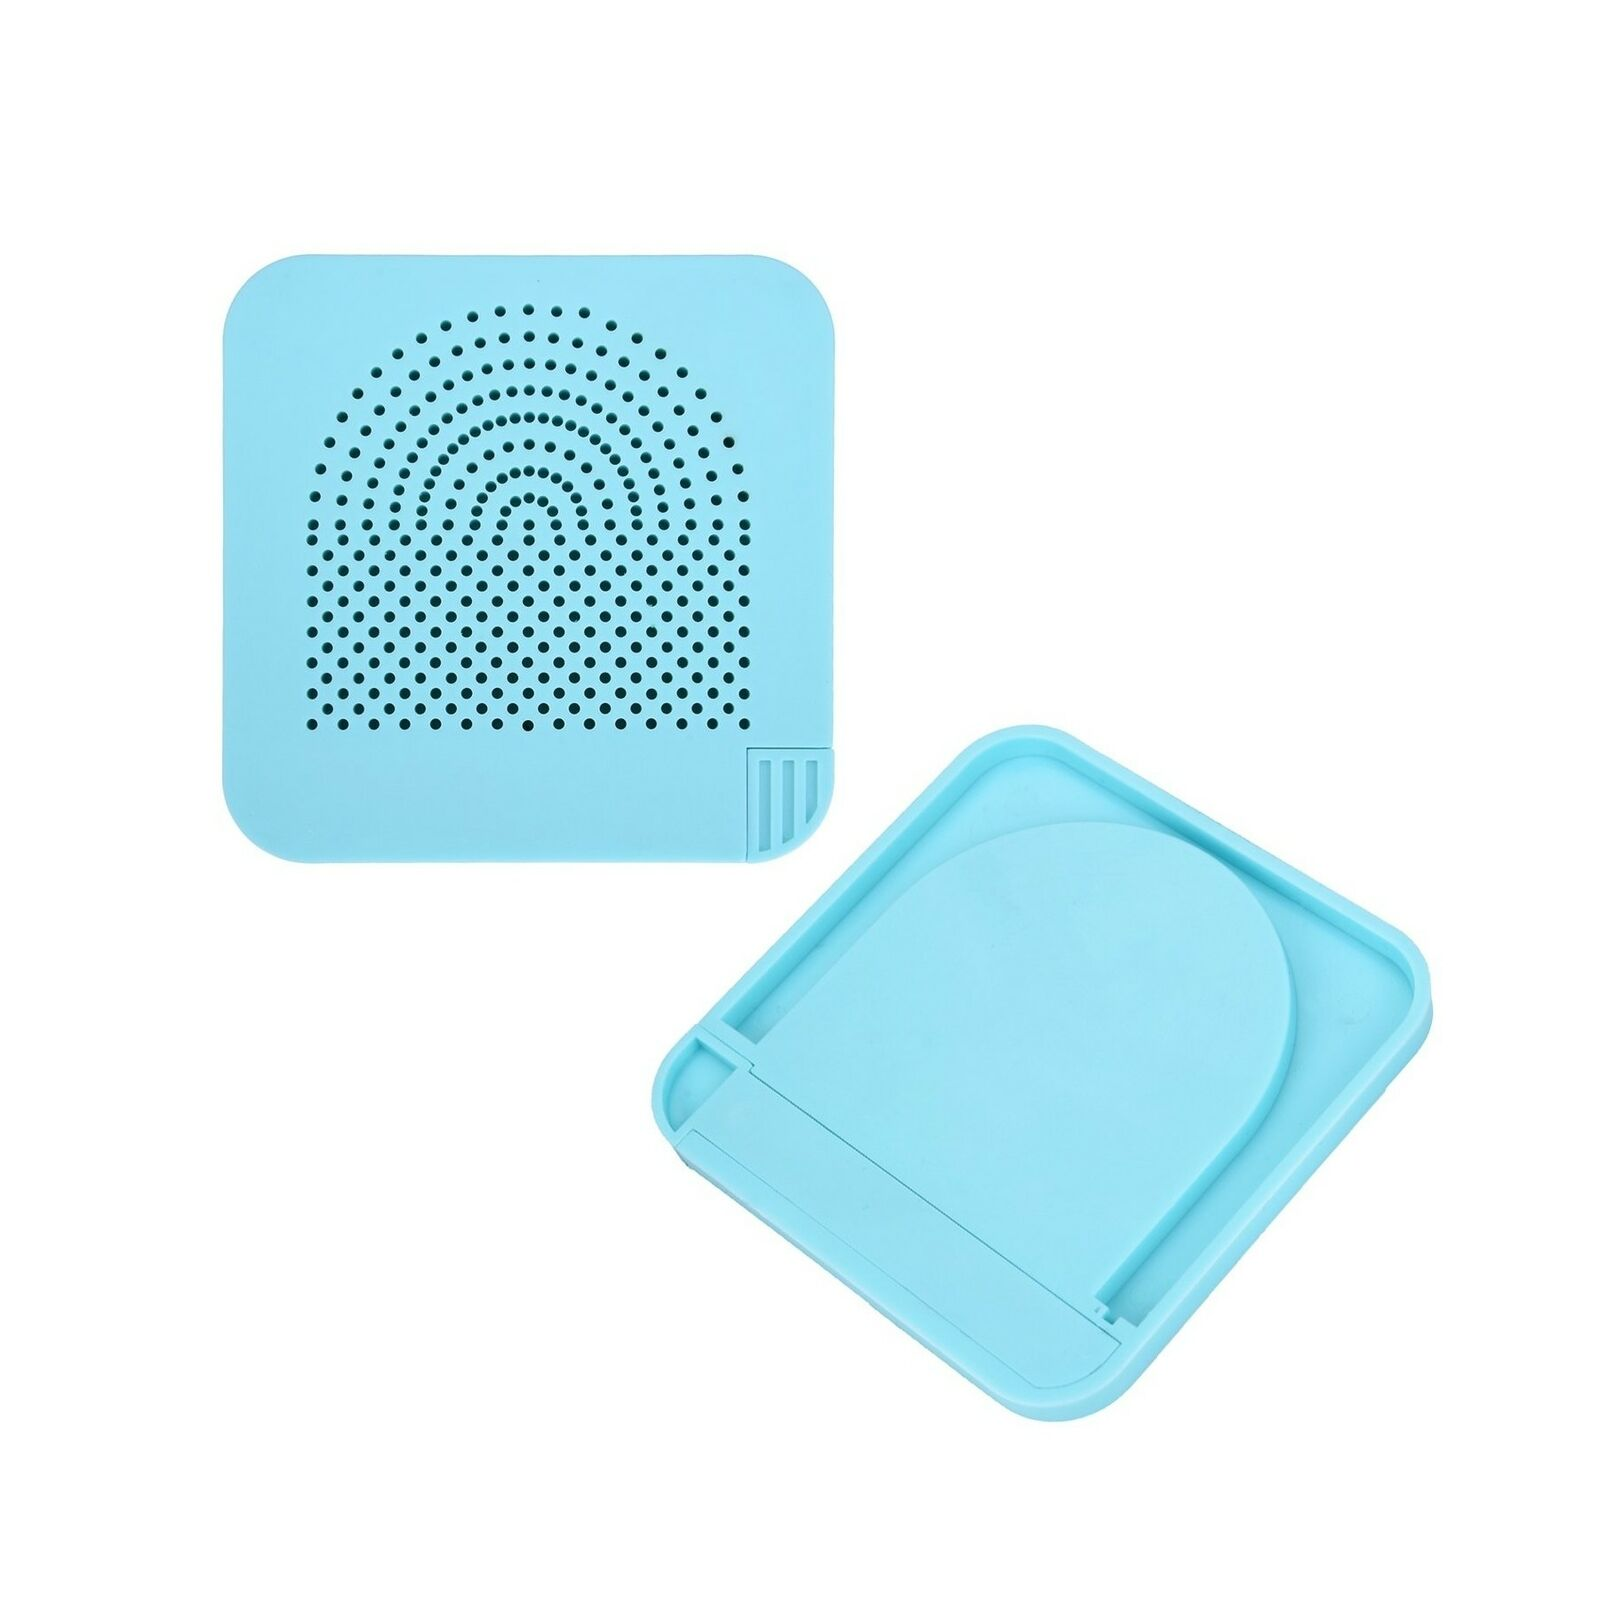 Outus Quilling Board with Pins Storage Light Blue Grid Guide for Paper Crafting Winder Roll Square Craft DIY Tool